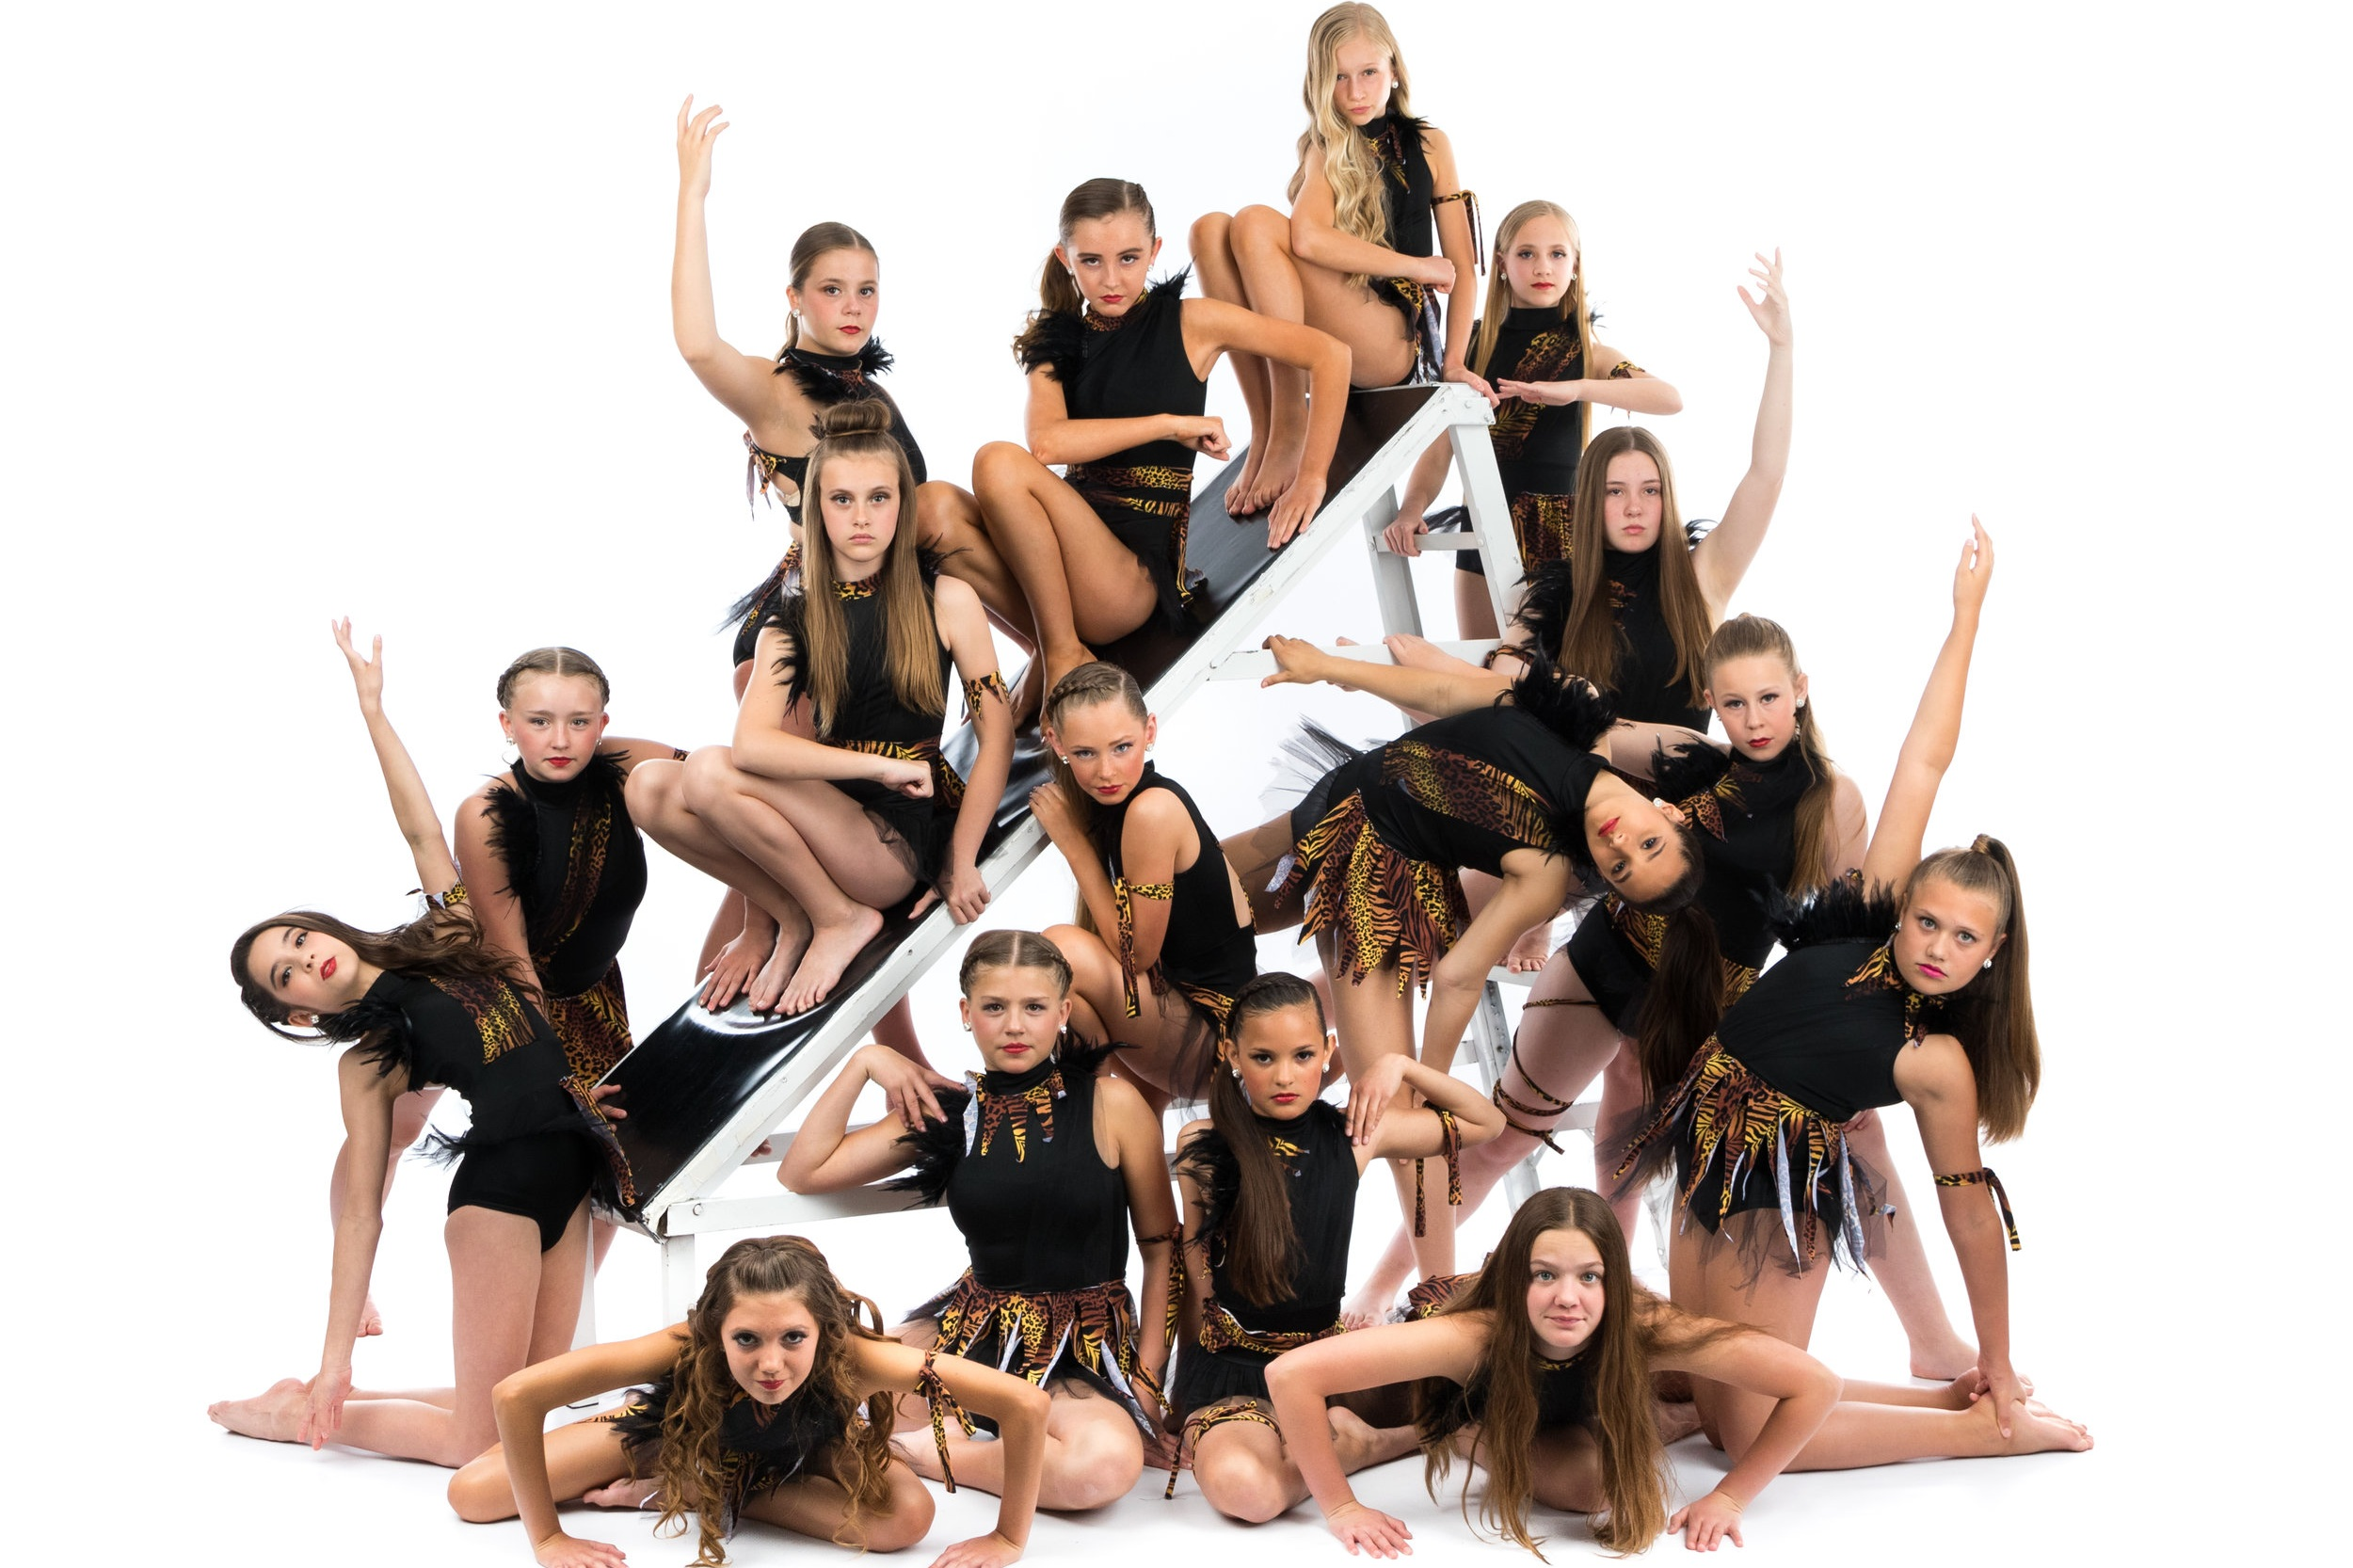 PERFORMING - Just Dance's Competitive Companies, run by Ellie Smith, offer dedicated dancers the unique opportunity to master dance technique, artistic expressiveness, and performance ability at the finest levels by representing the academy both locally and nationally in high exposure performances and competitions. Through this highly intensive and positive experience, Company dancers strengthen their self-esteem while developing critical life skills of responsibility, self-discipline, dependability, good sportsmanship, and teamwork. Our Companies consistently receive awards and praise.